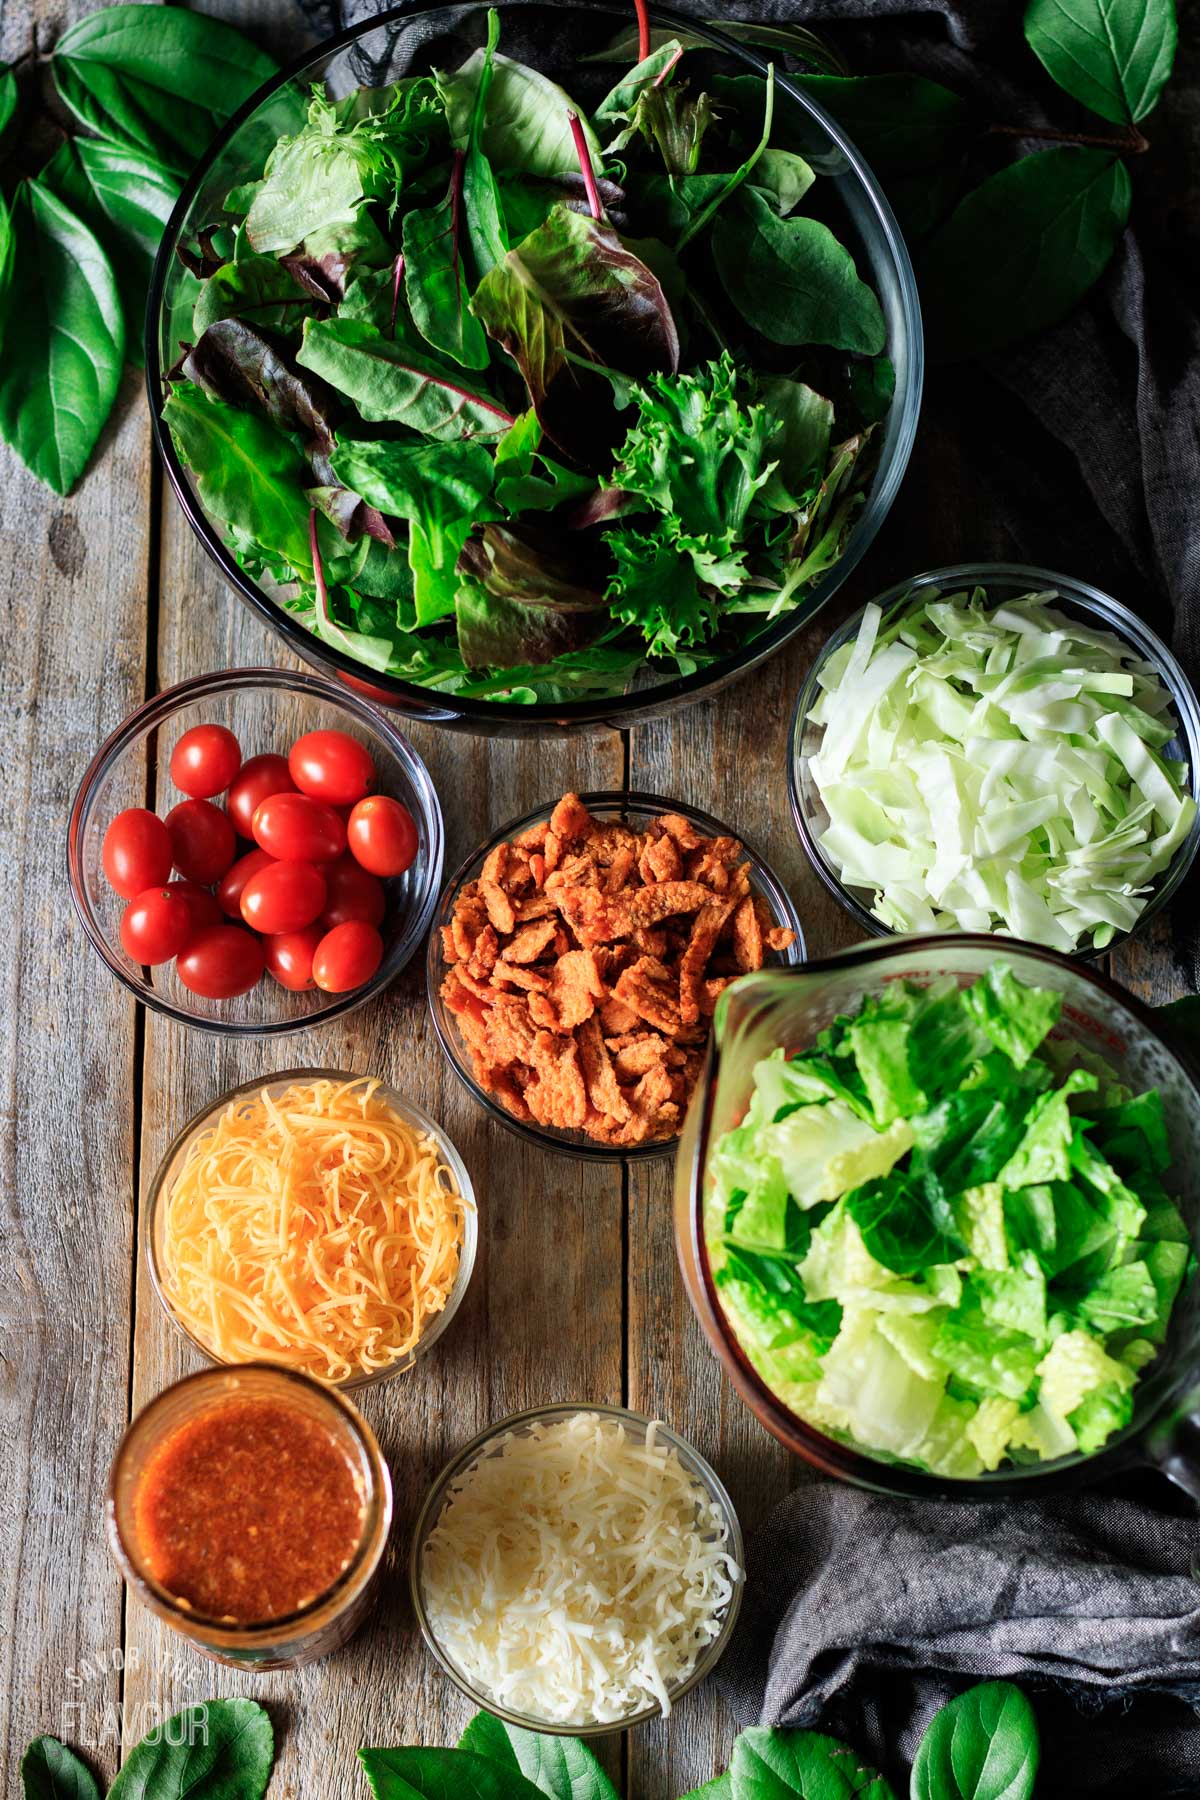 bowls of ingredients for Chick-fil-A side salad